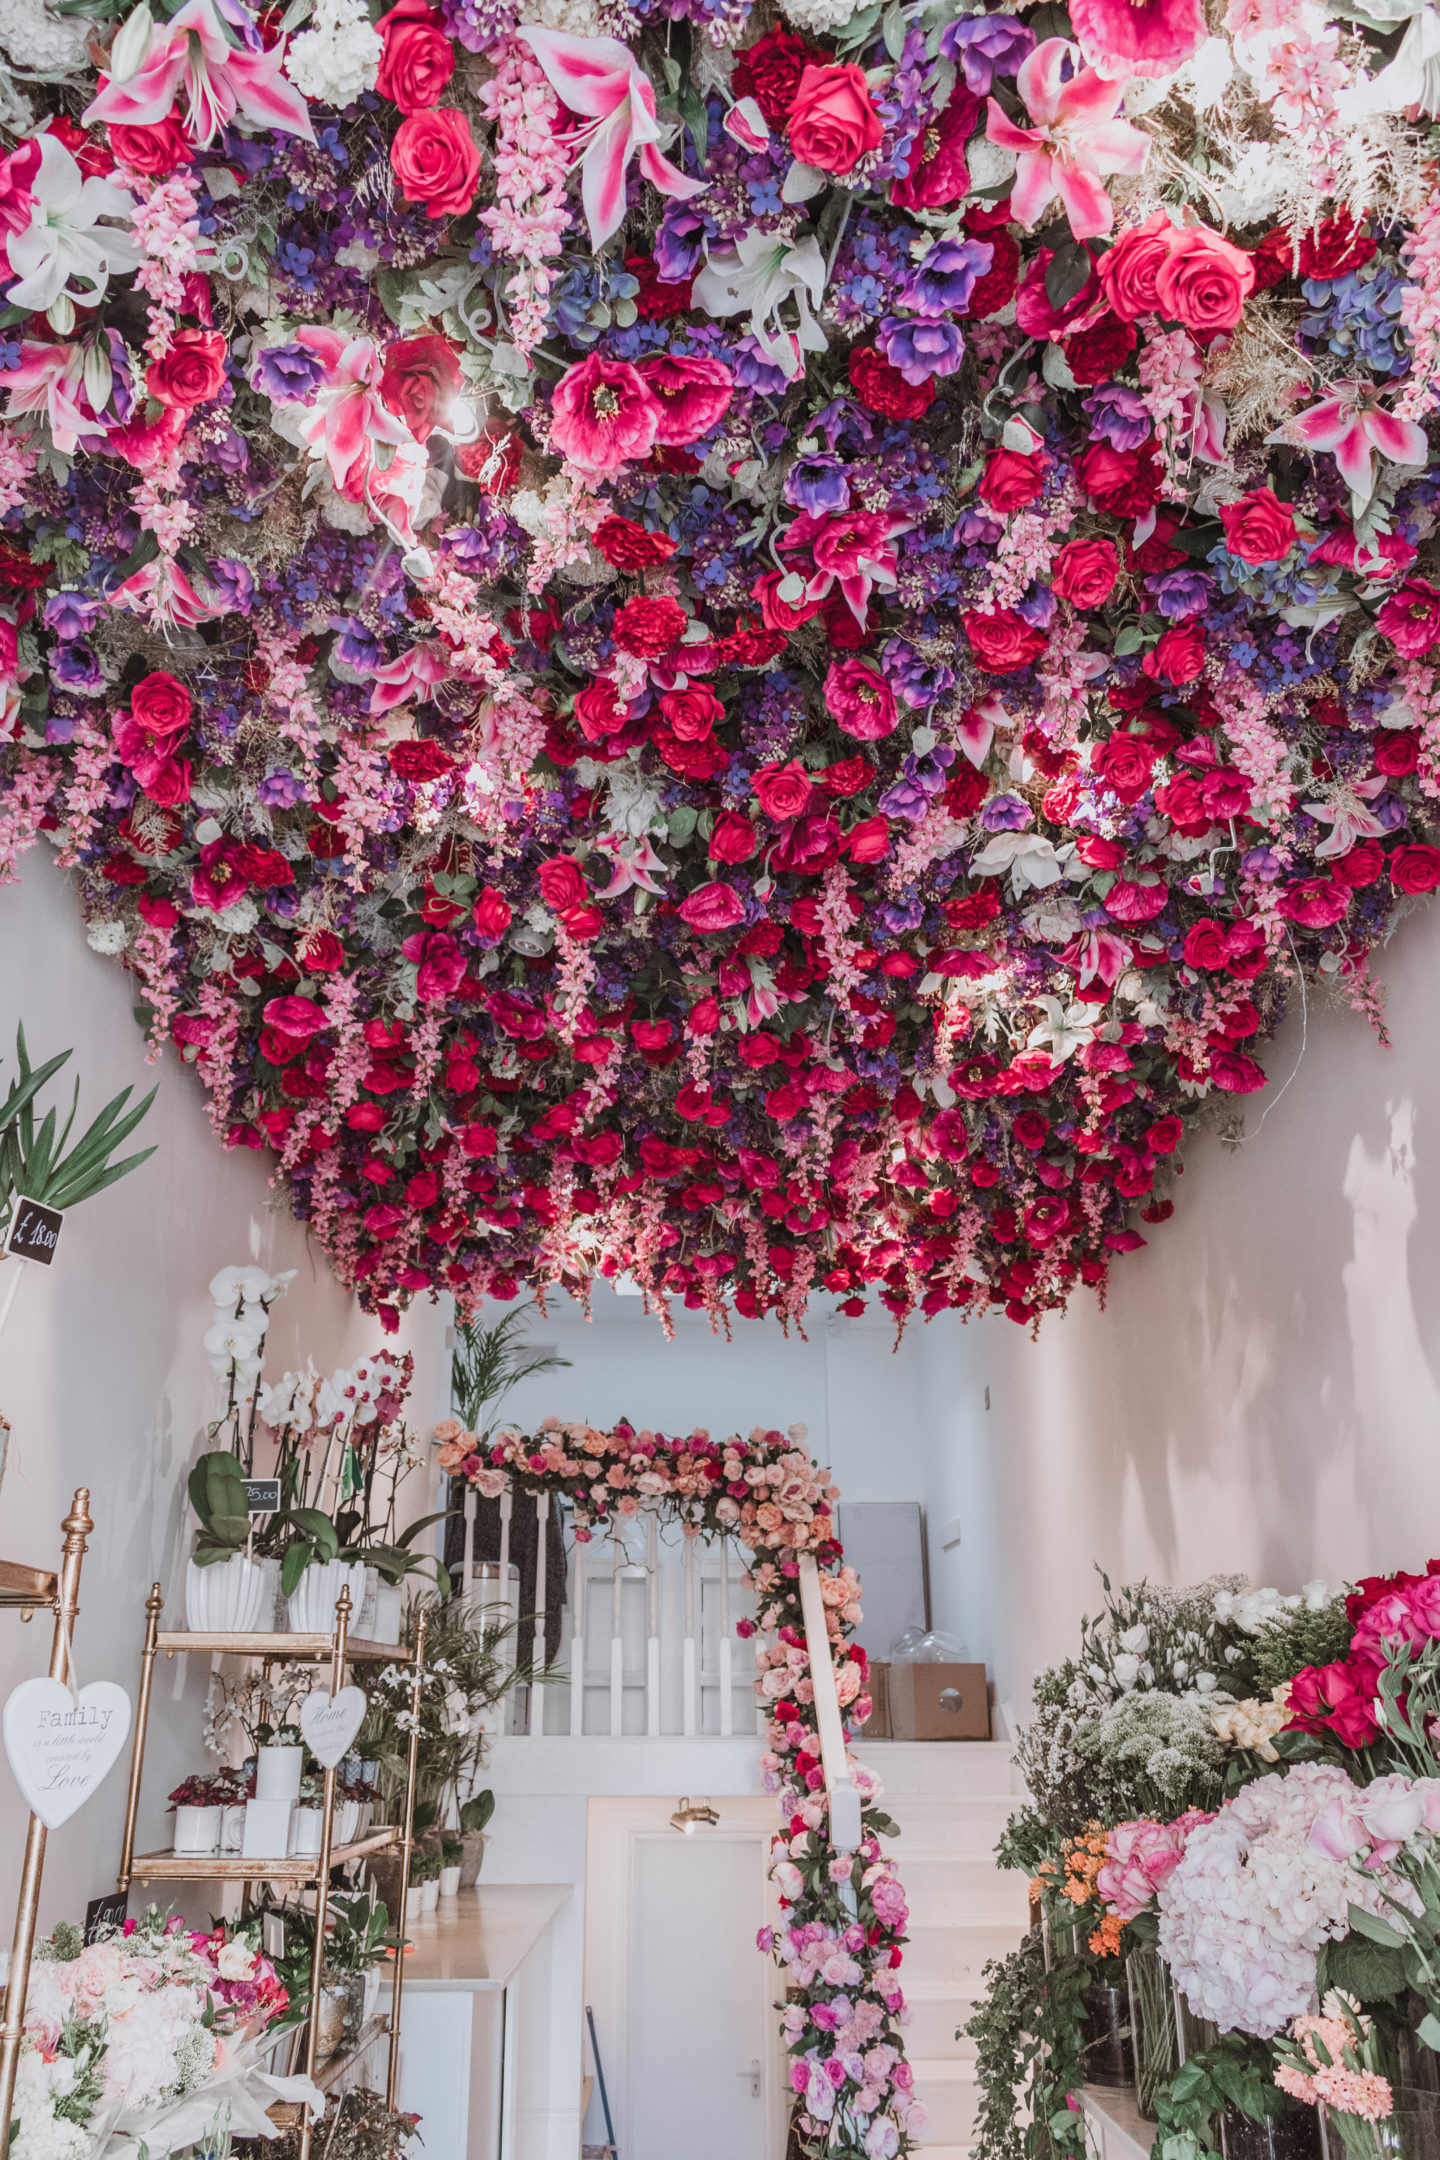 10 Floral Facades To Instagram In London This Spring Gingersnap